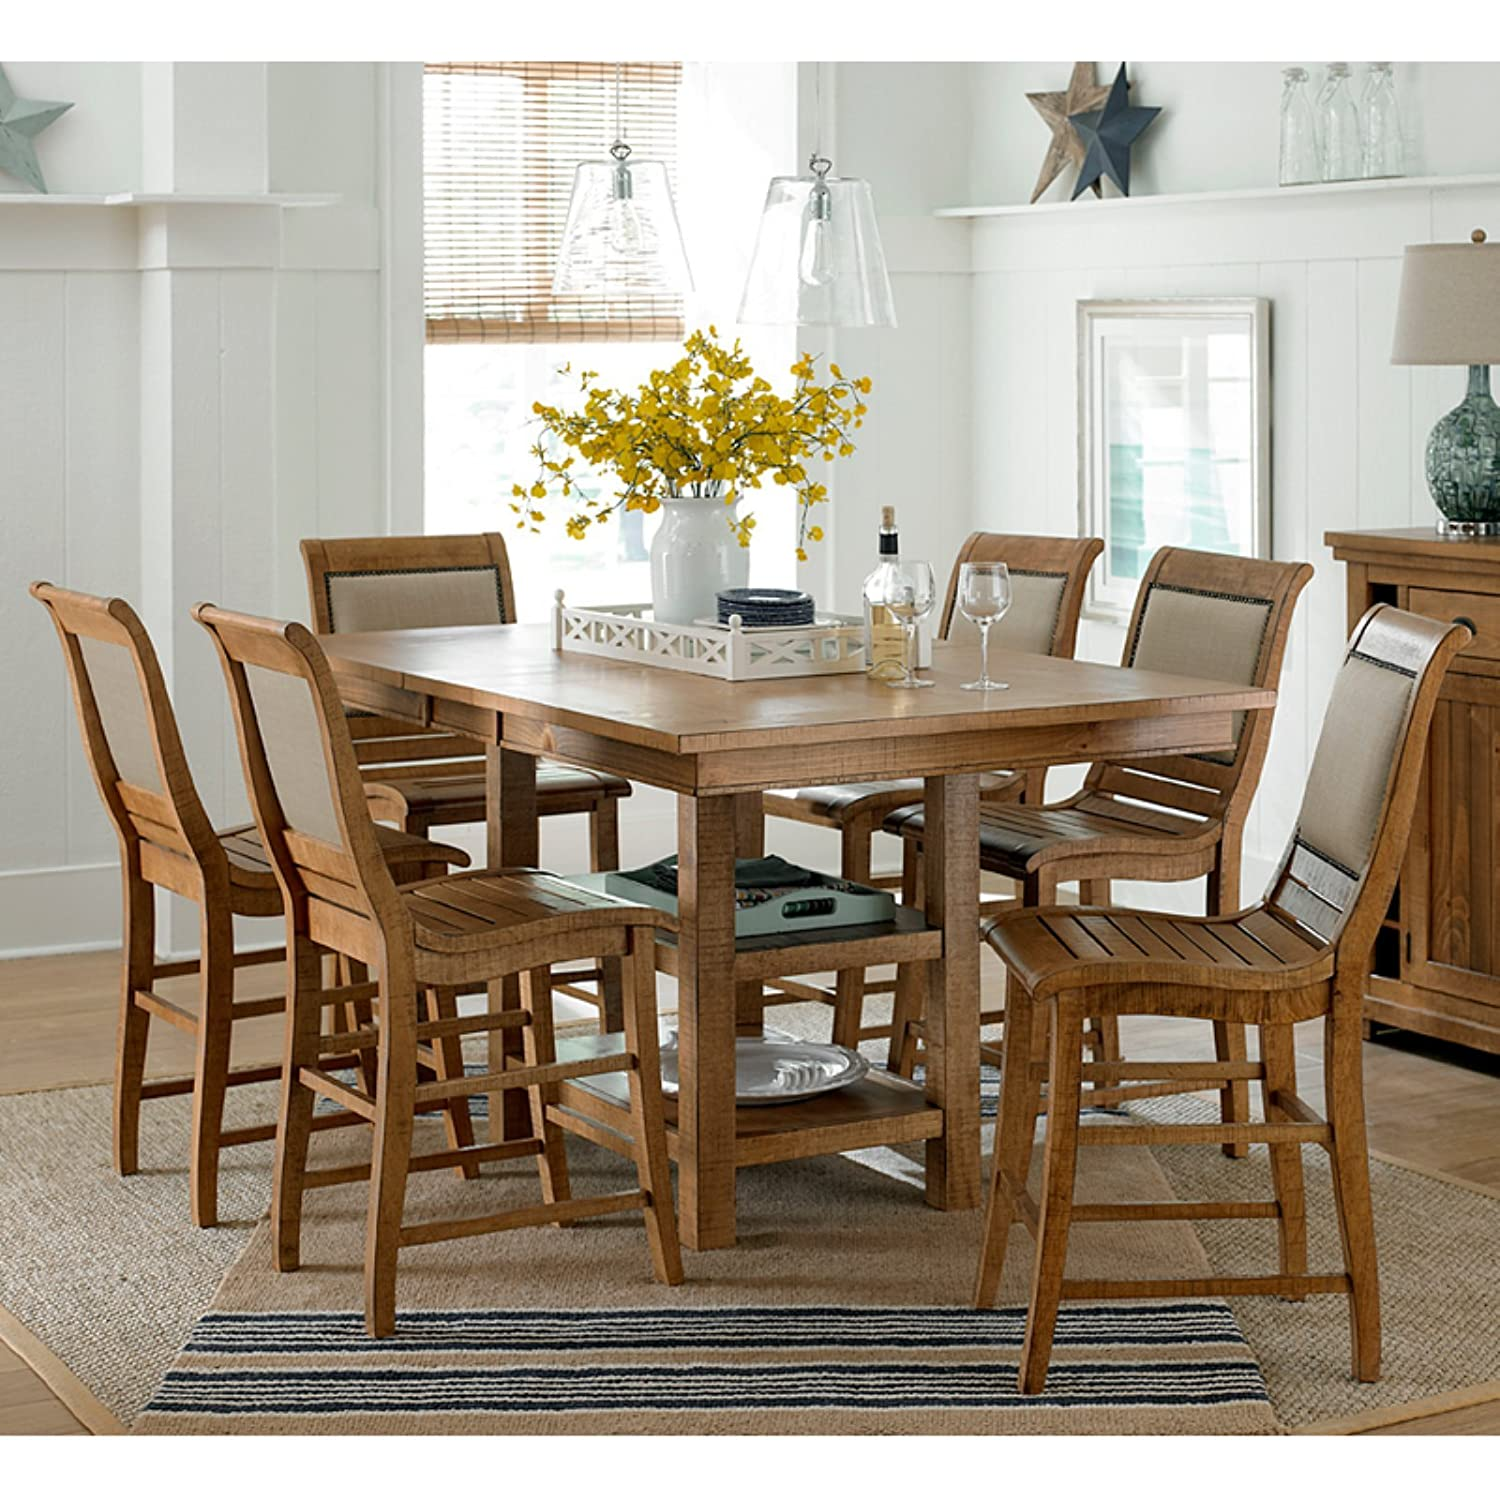 Willow upholstered dining chair narrow willow solid oak dining chair - Amazon Com Progressive Furniture Willow Dining Counter Upholstered Chairs Chairs